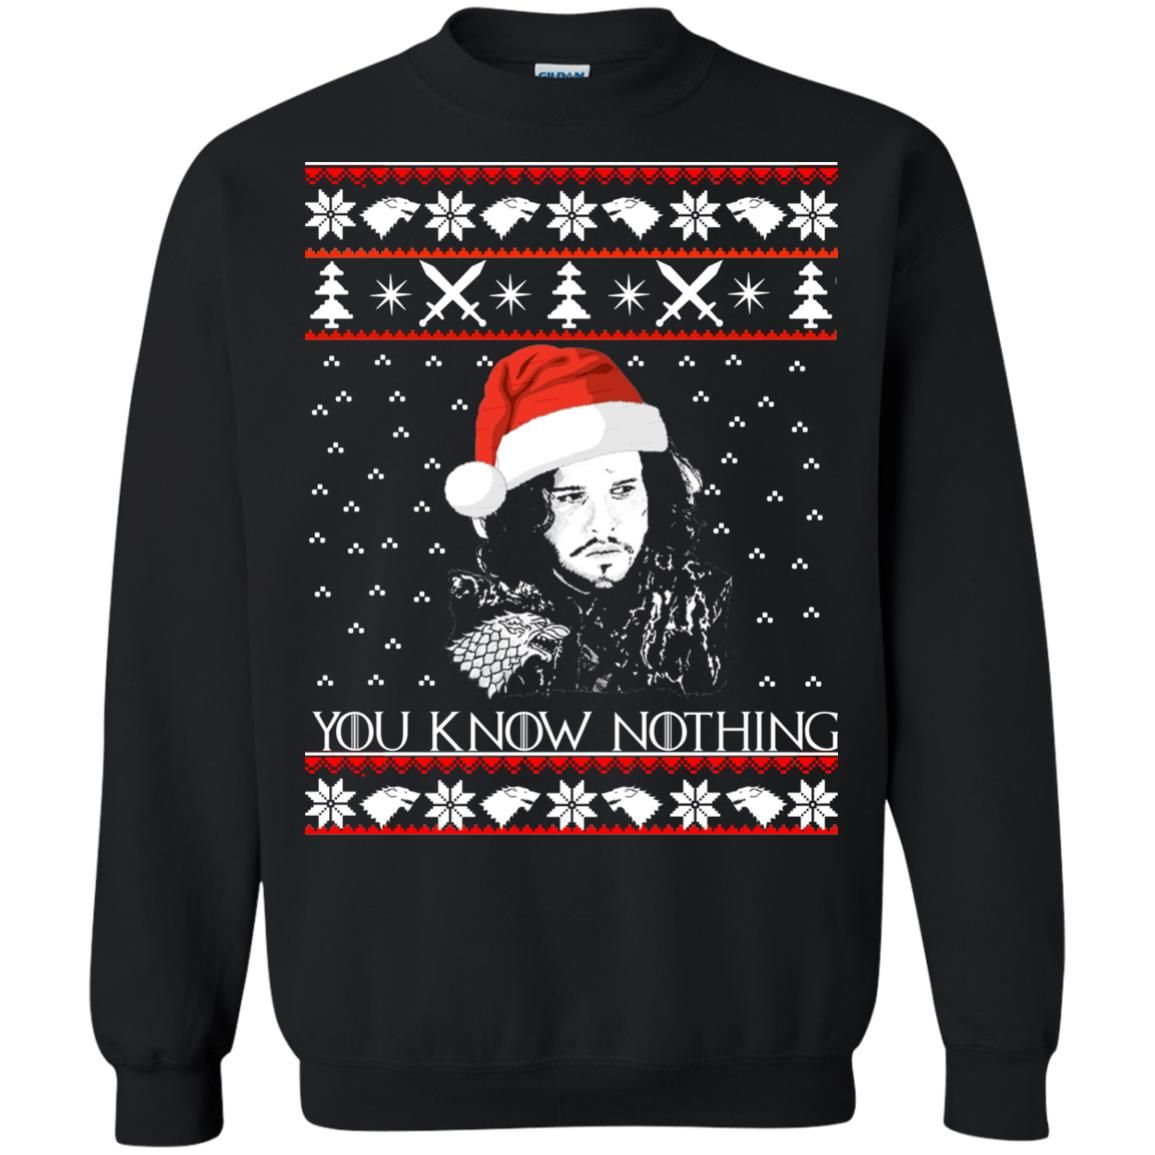 image 772 - Jon Snow: You Know Nothing Ugly Christmas Sweater, long sleeve